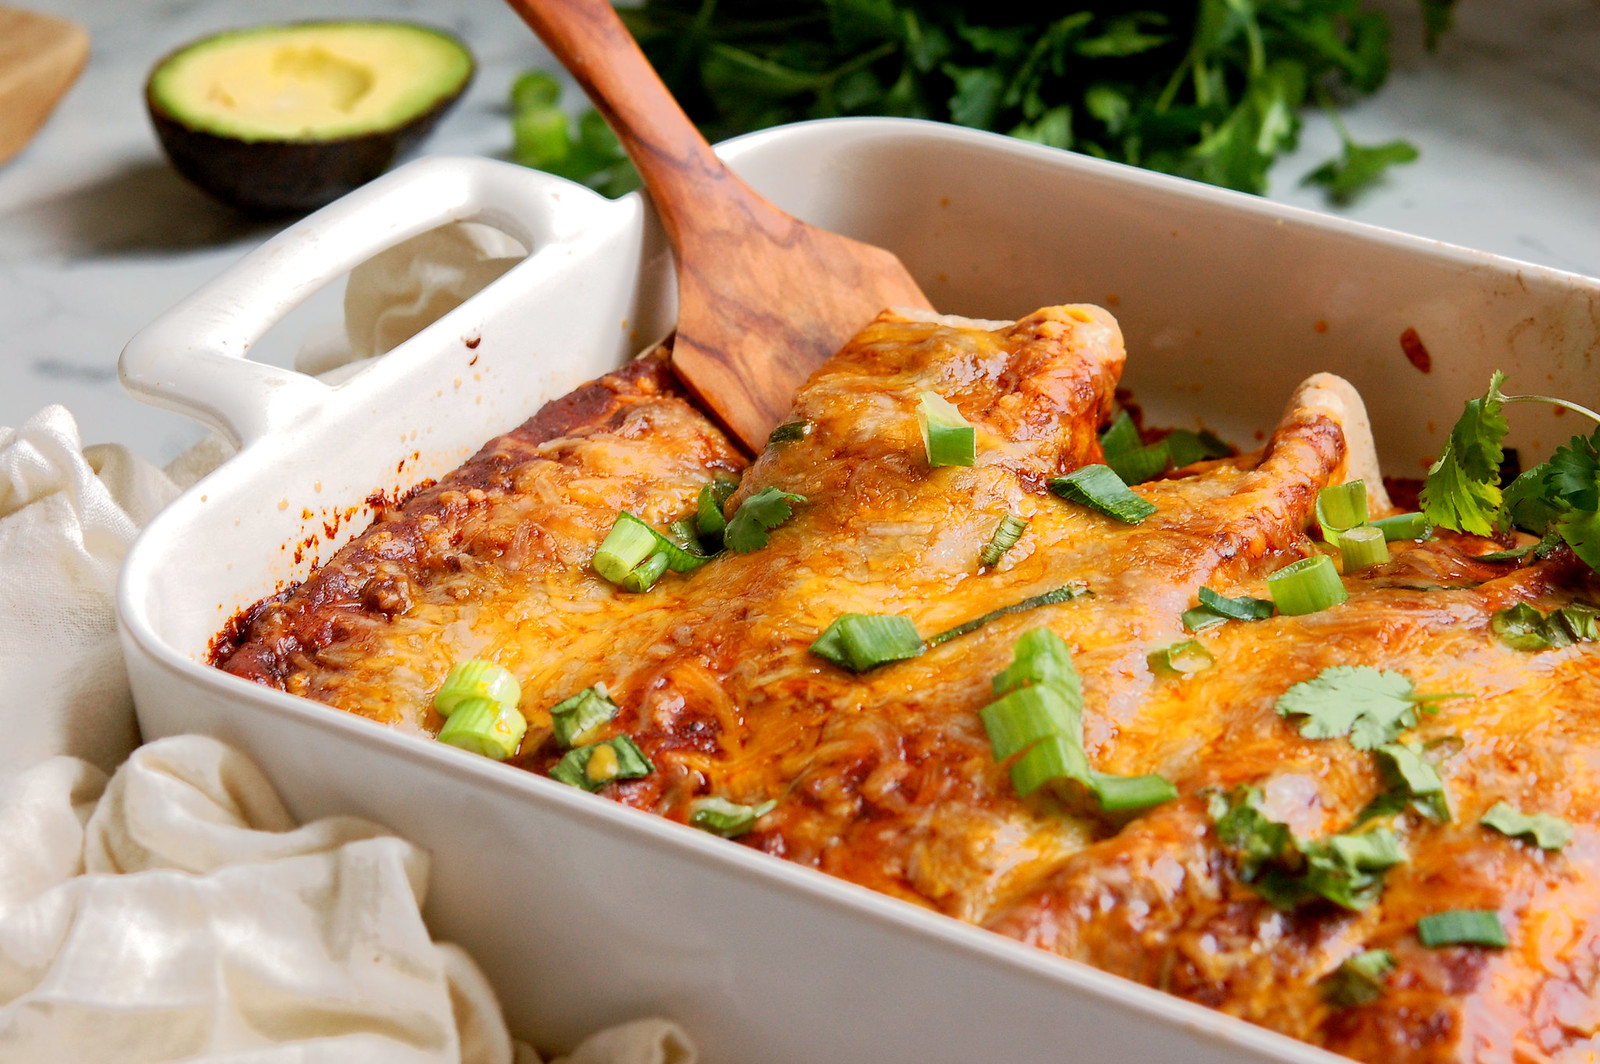 chicken black bean enchiladas baked in casserole with melted cheese and scallions